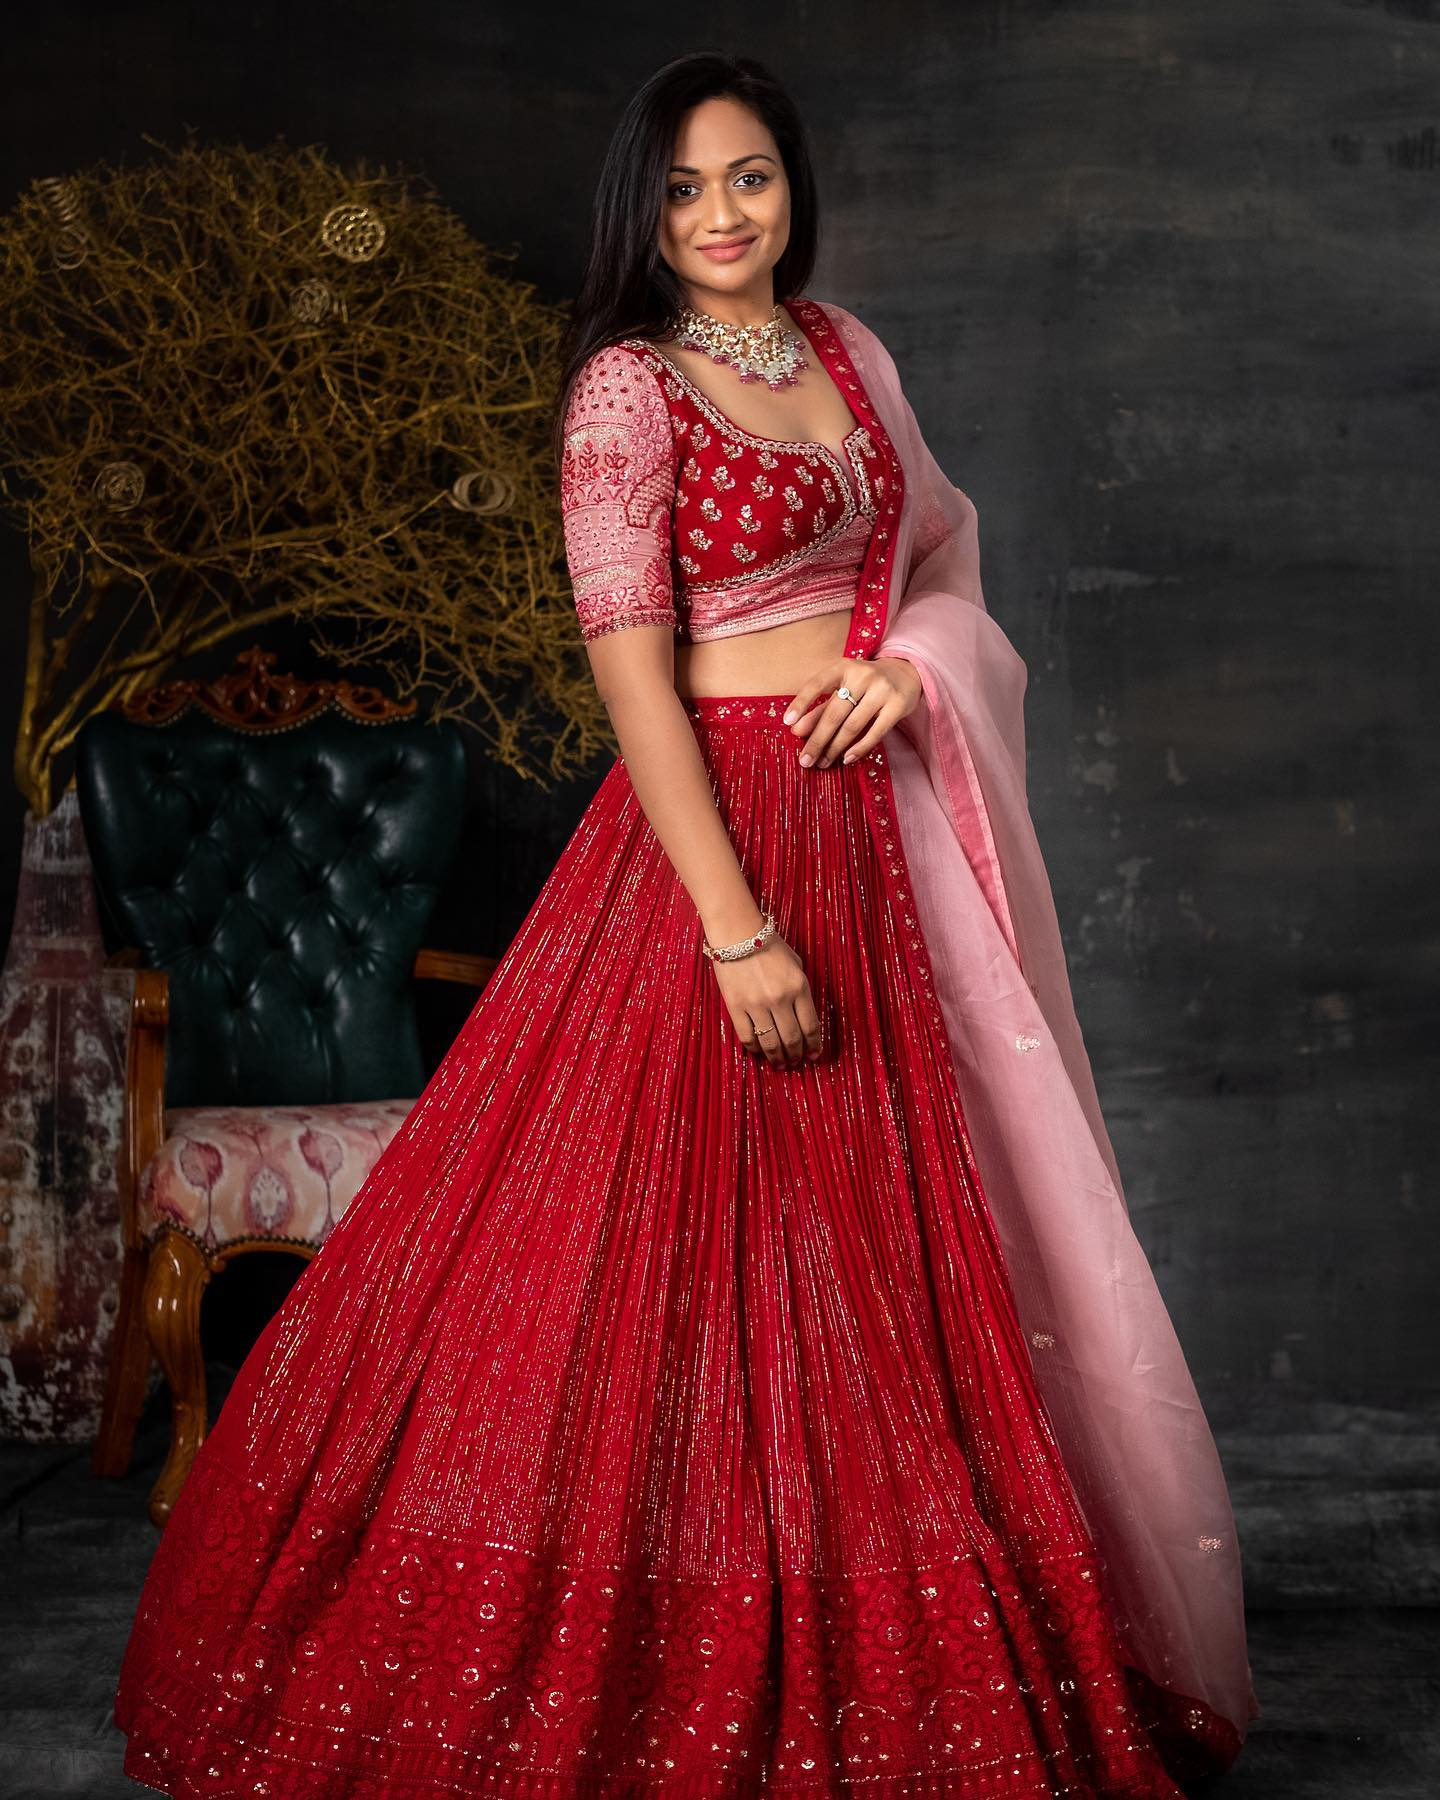 Pretty red color bridal lehenga and blouse with classy hand embroidery sequin work.  2021-07-13